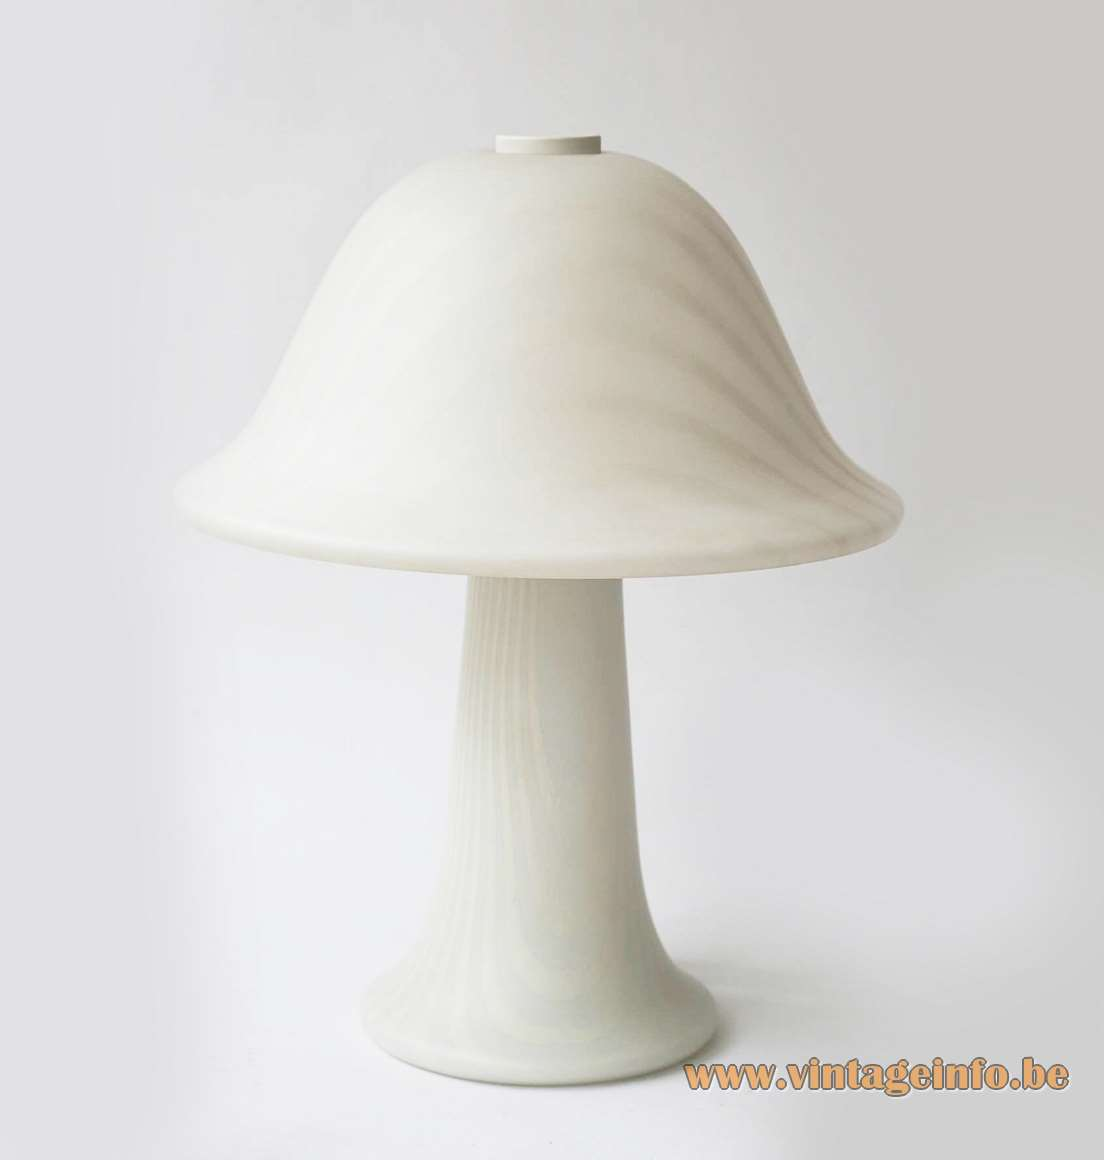 1970s Peill + Putzler mushroom table lamp striped opal satinised glass 1970s 1980s Mid-Century Modern MCM